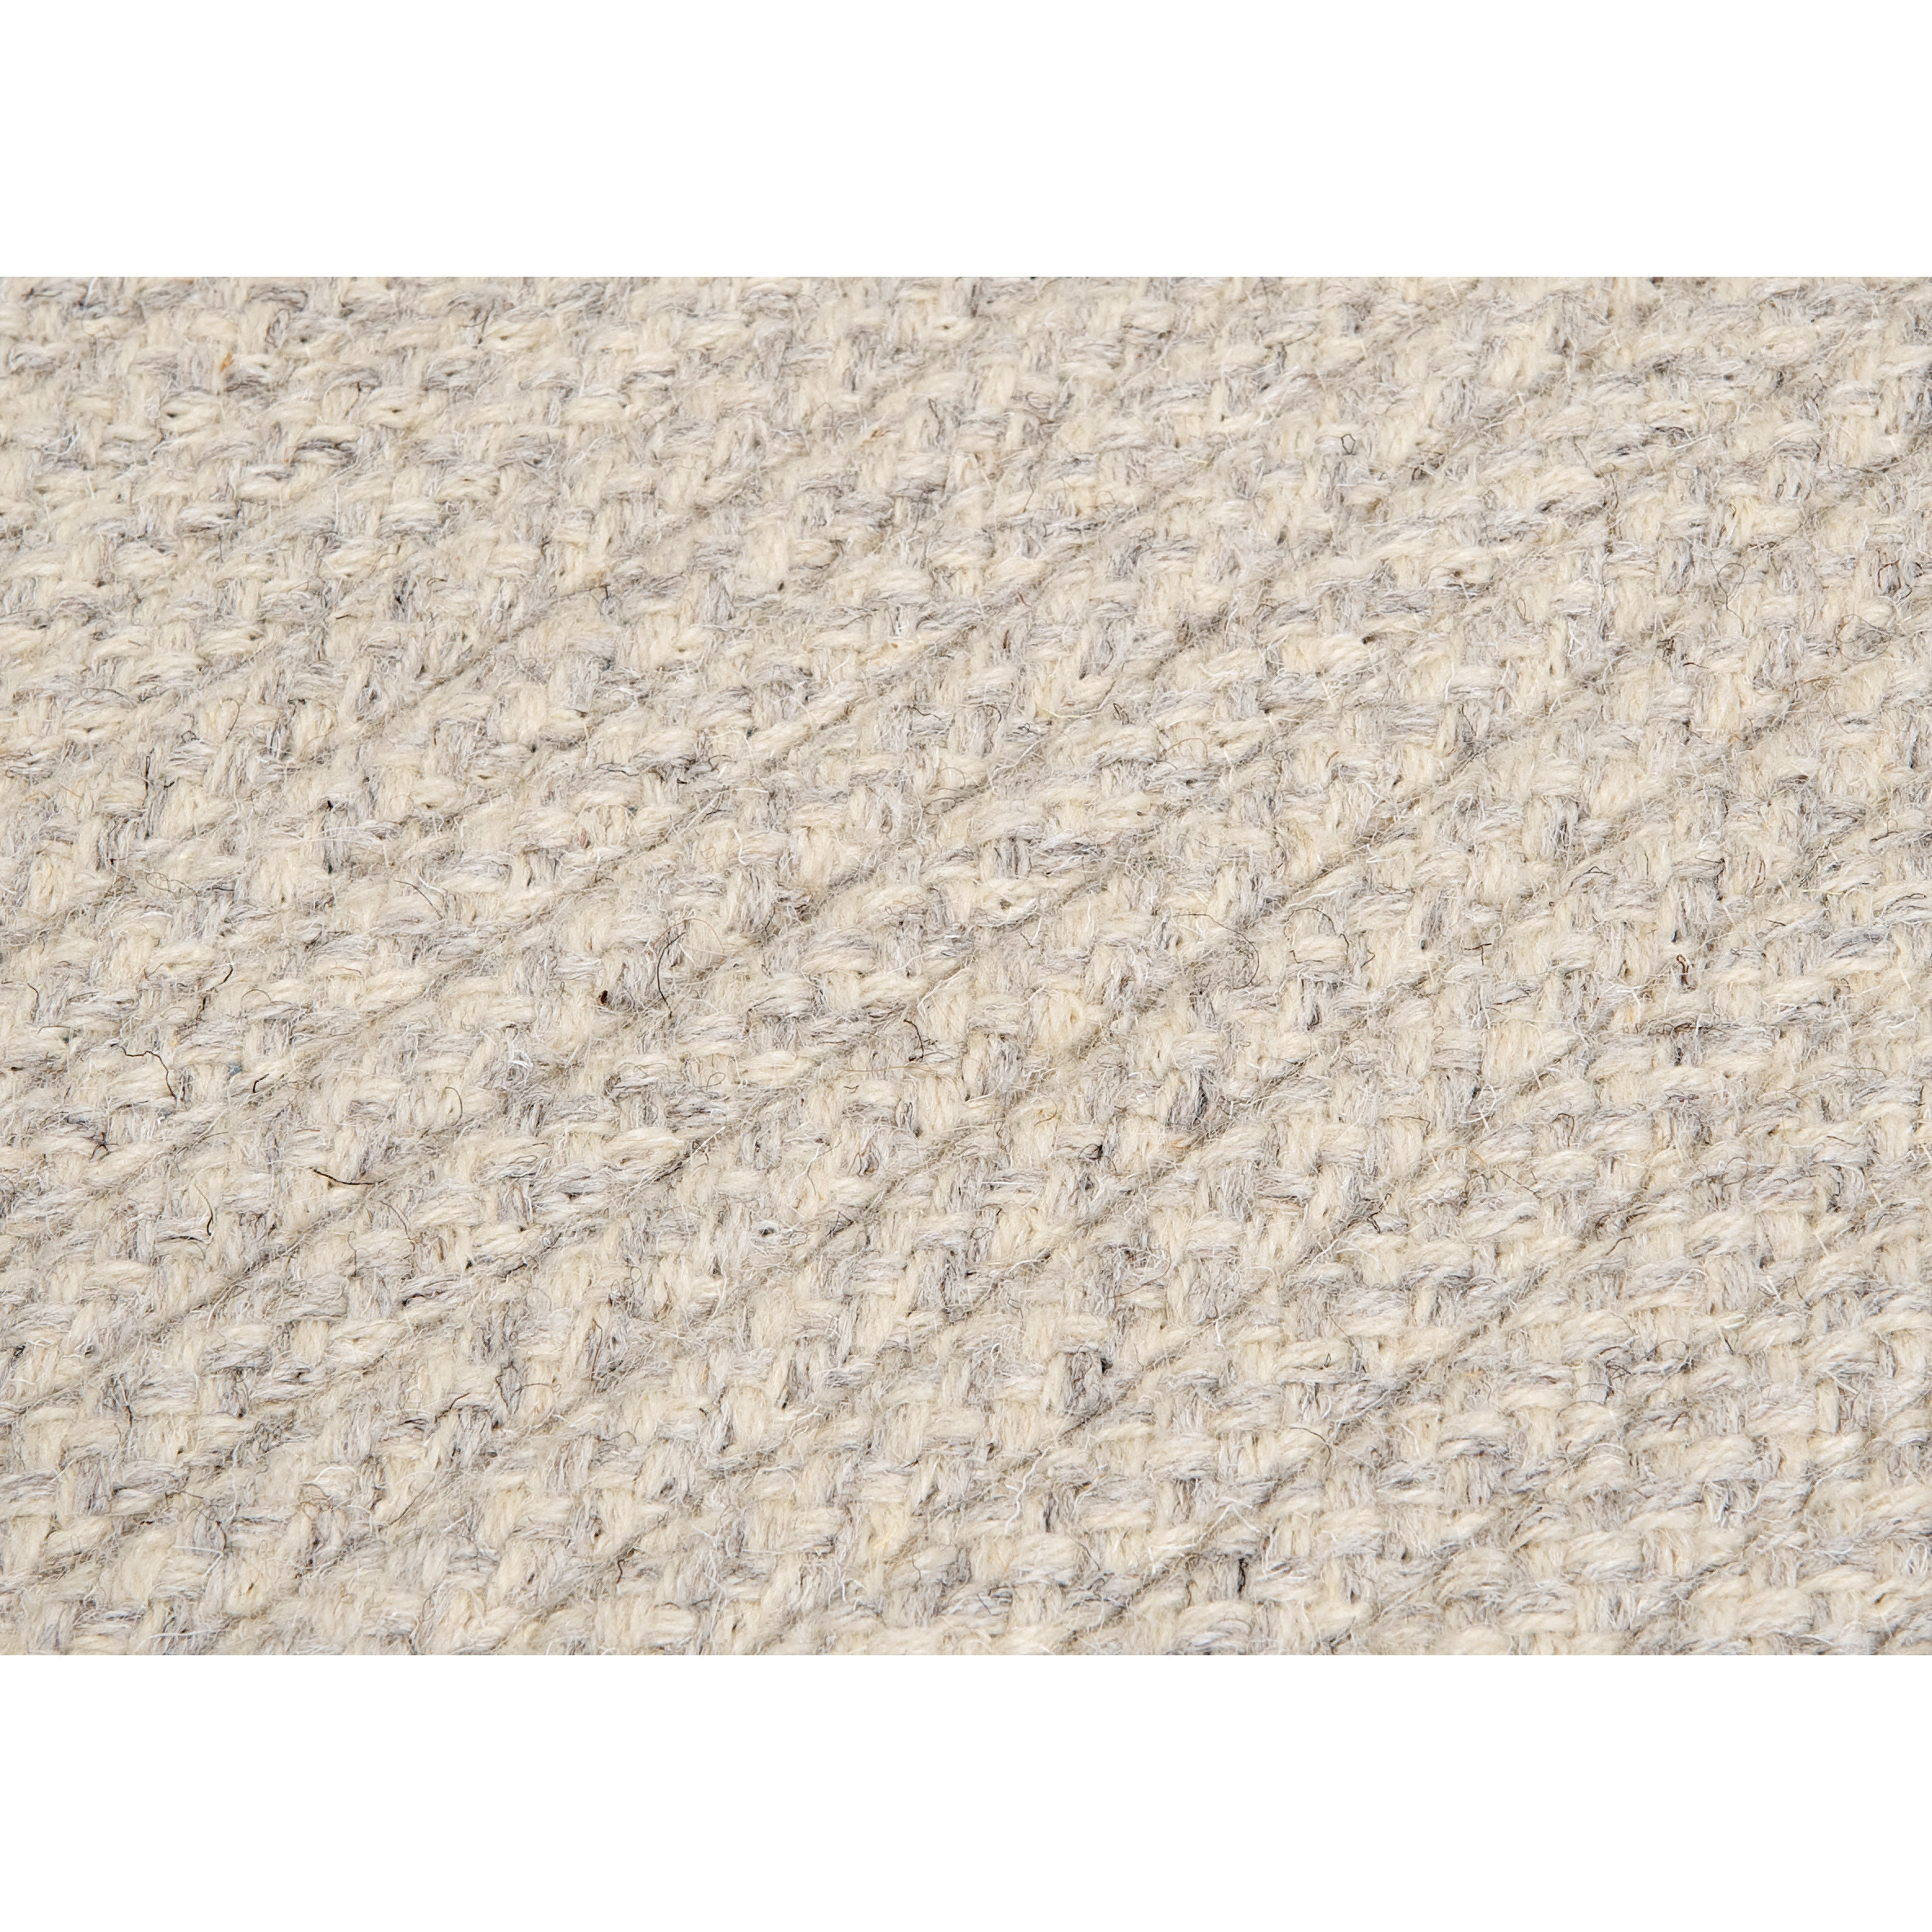 Braided Area Rugs Safavieh Braided Collection Brd308a Hand Woven Regarding Braided Wool Area Rugs (#6 of 15)